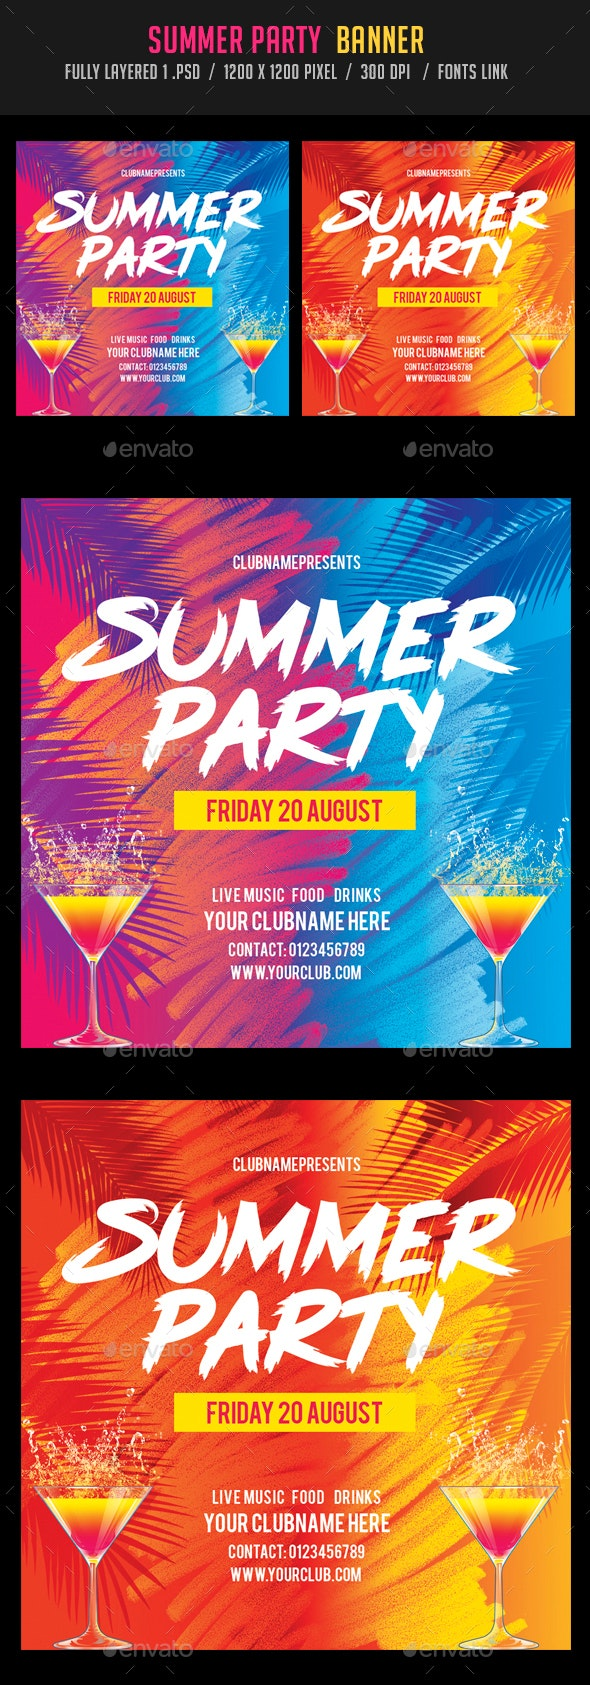 Summer Party Banners - Banners & Ads Web Elements